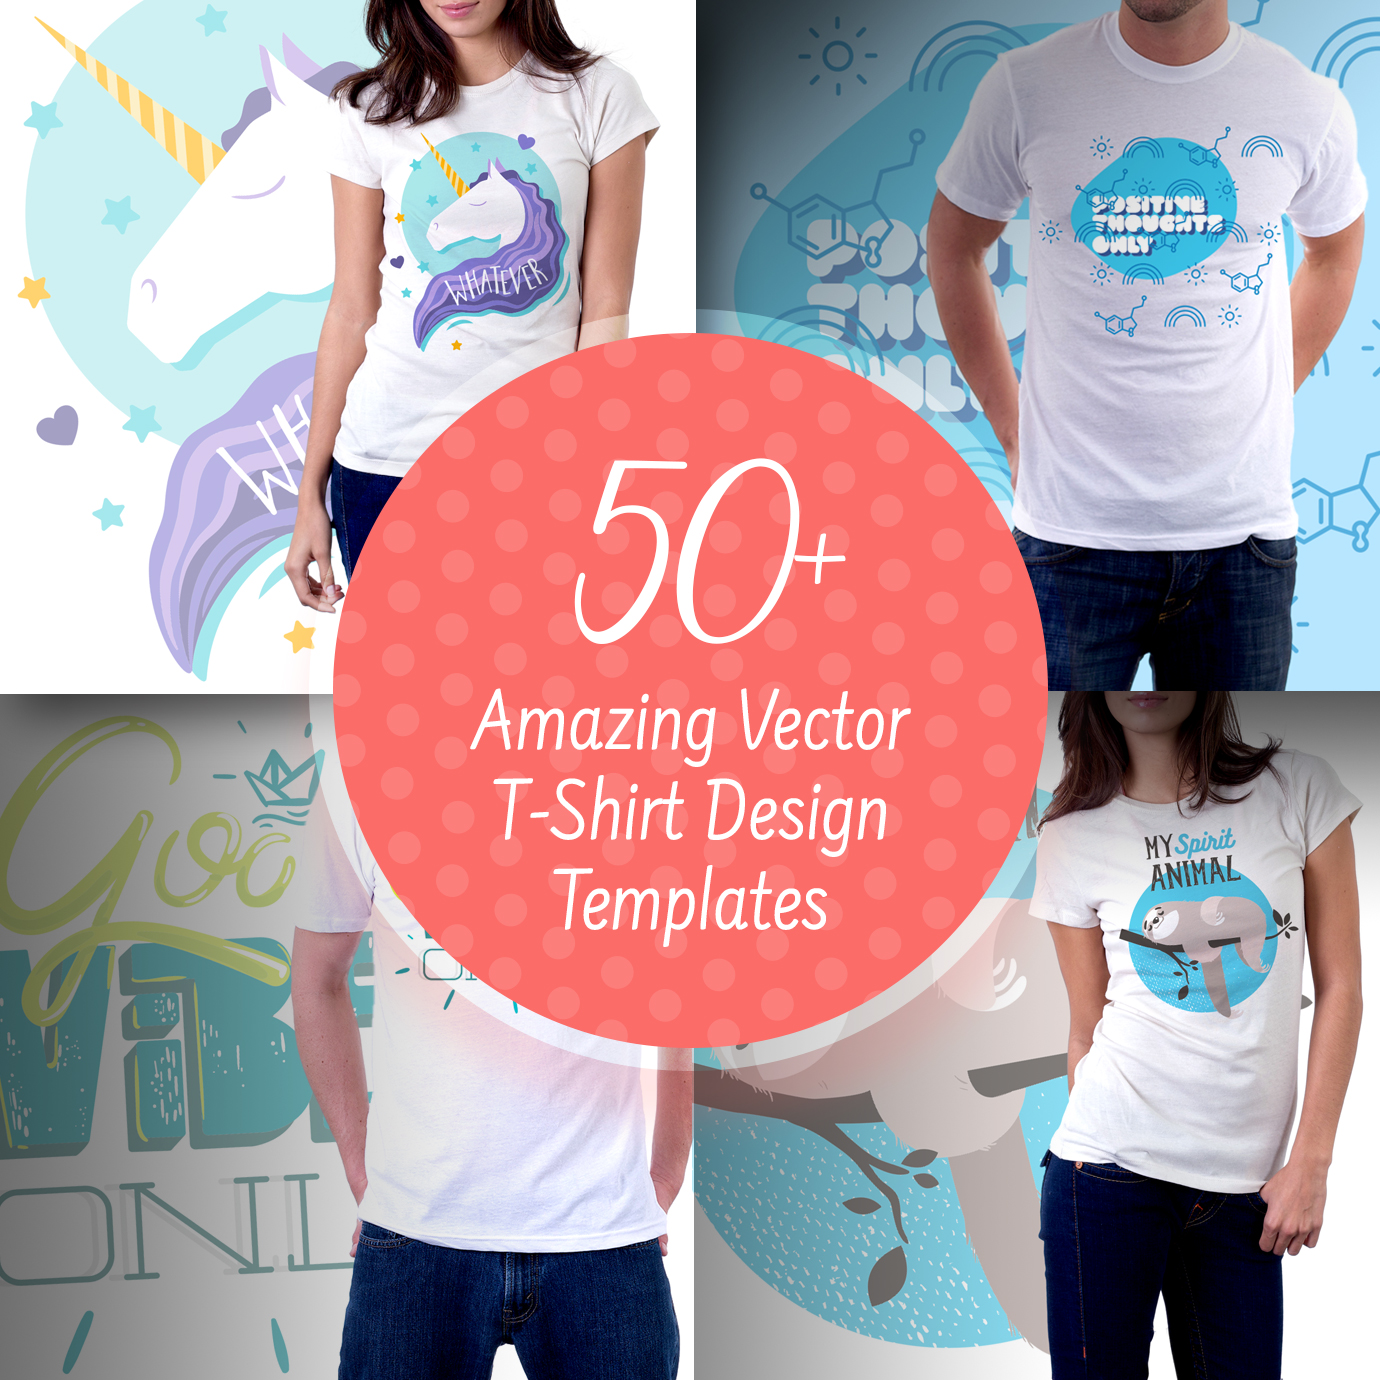 50+ Best T-Shirts 2021. Best T-Shirt Design Ideas For You - 50 Amazing Vector T Shirt Design Templates 1